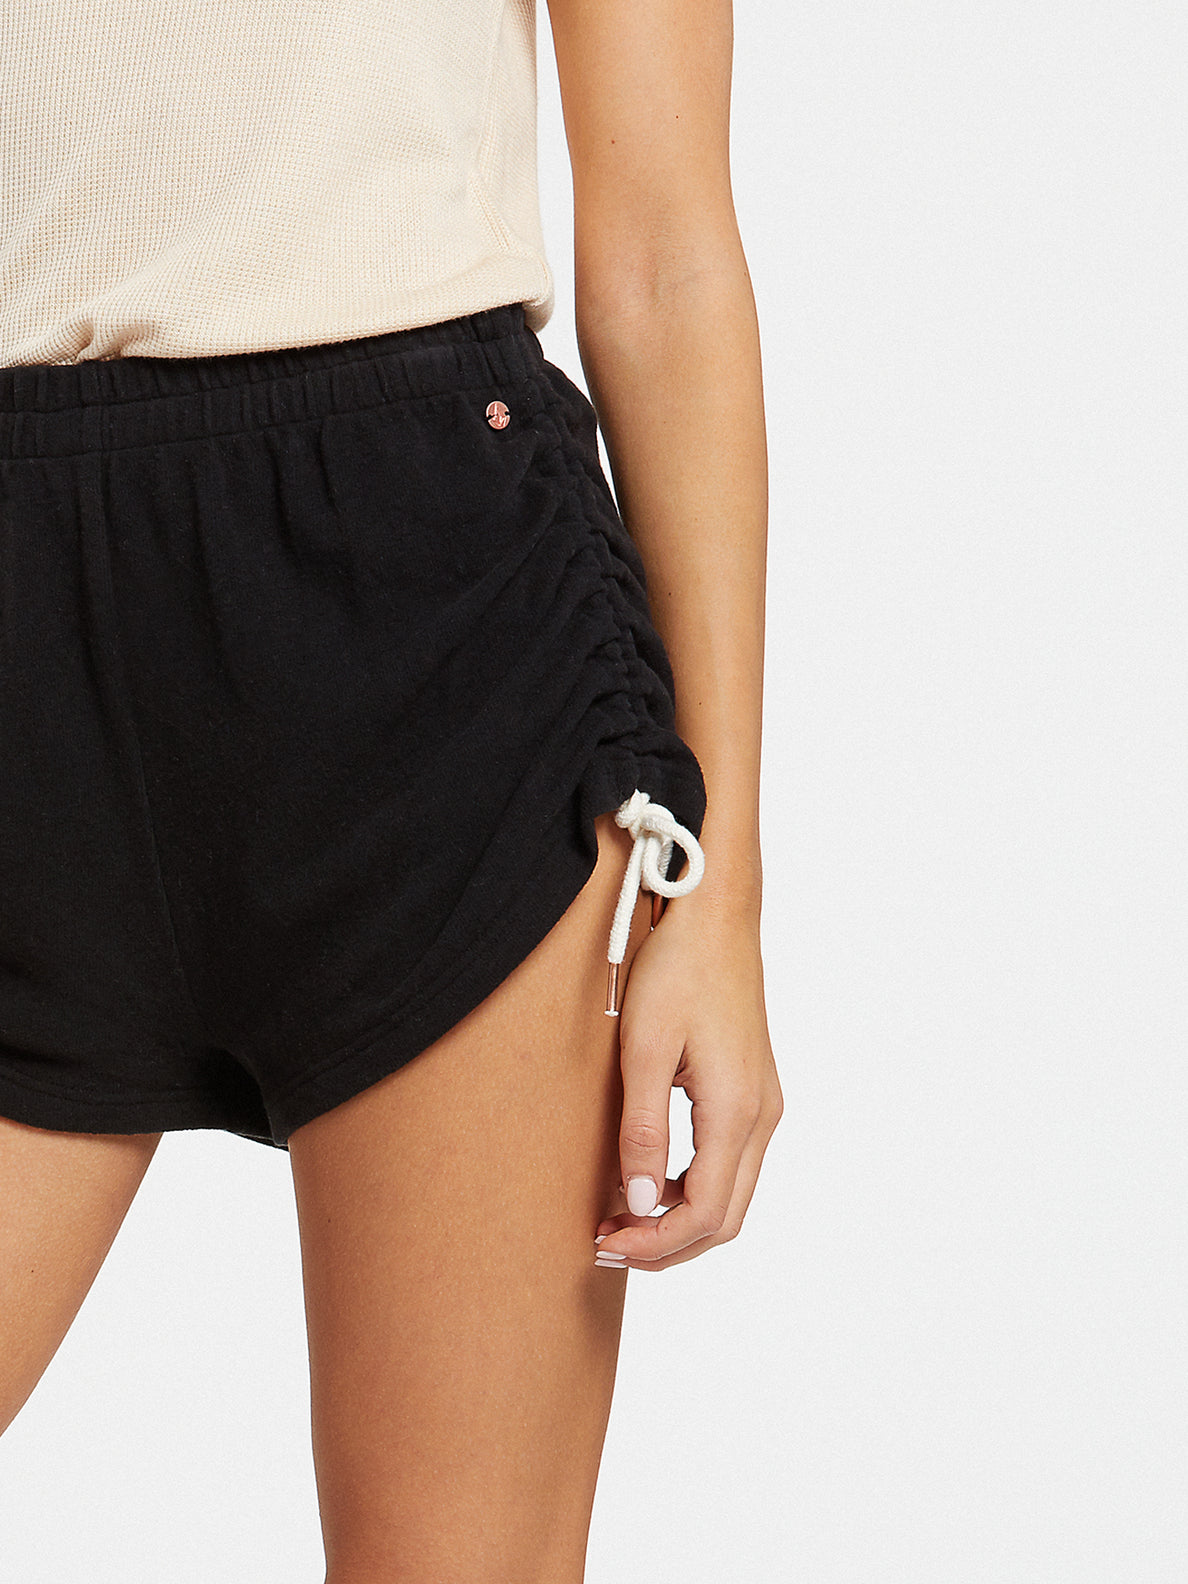 Lived In Lounge Fleece Shorts - Black (B0931803_BLK) [52]